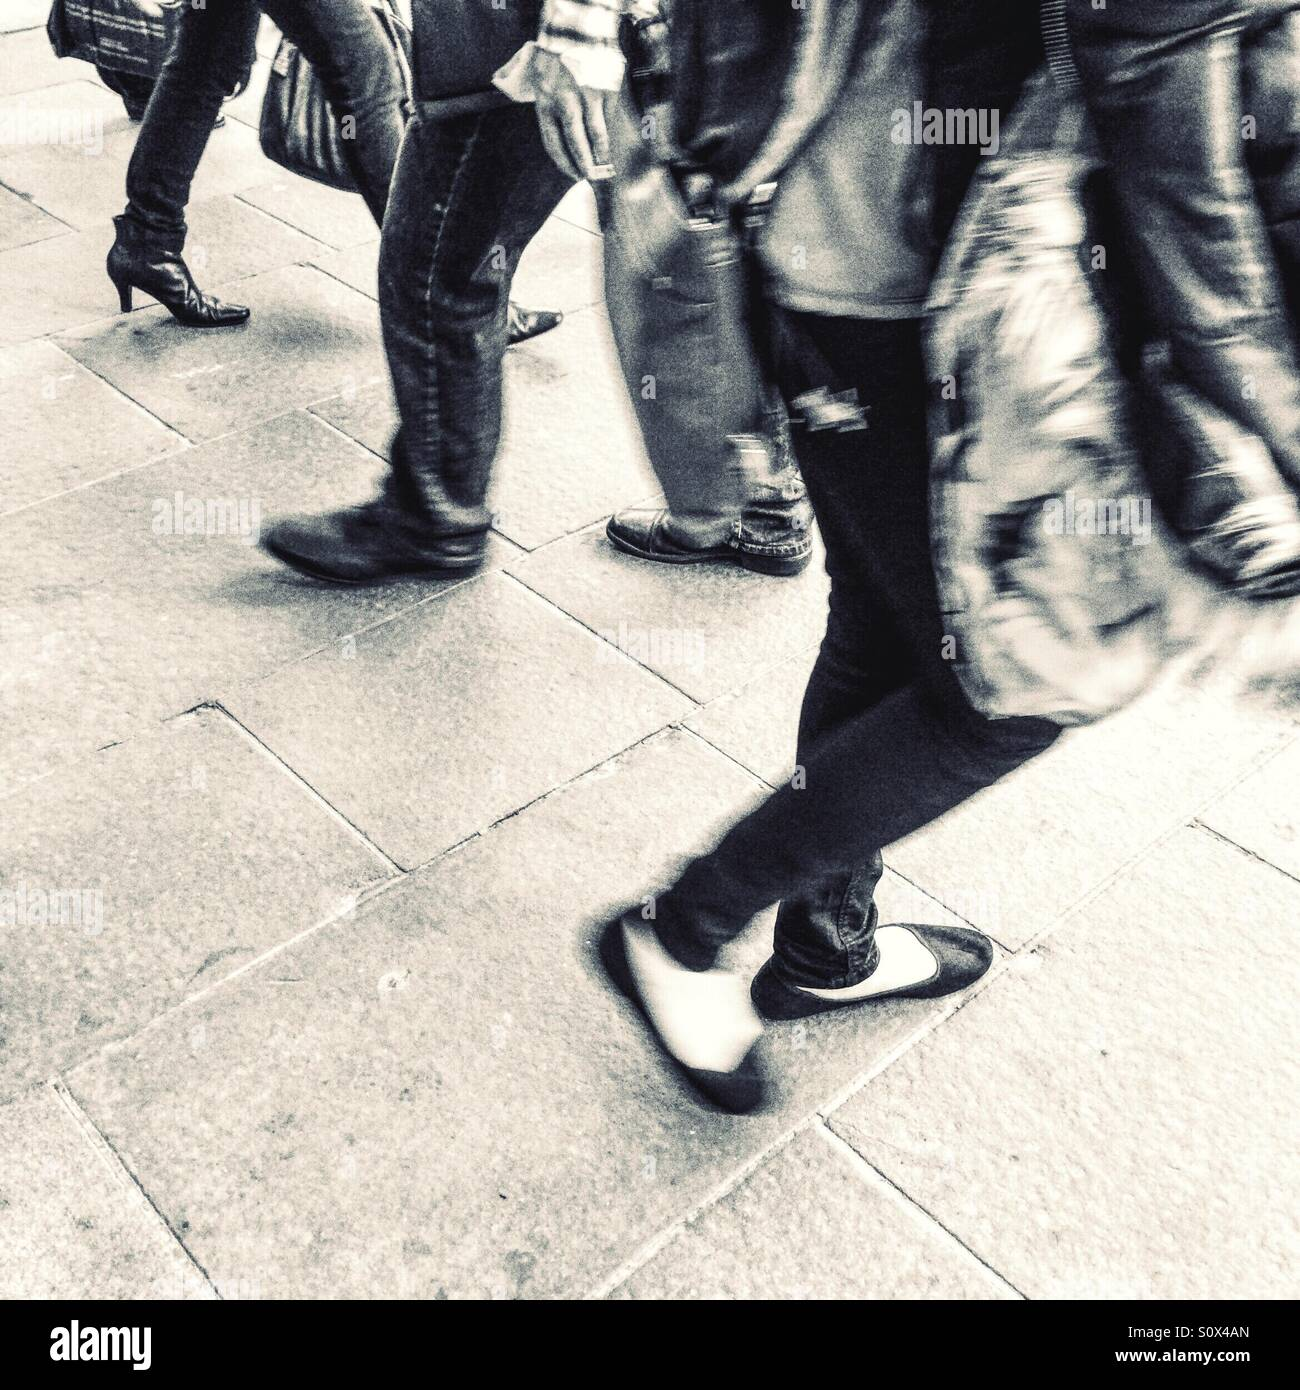 Motion blur of people walking by - Stock Image